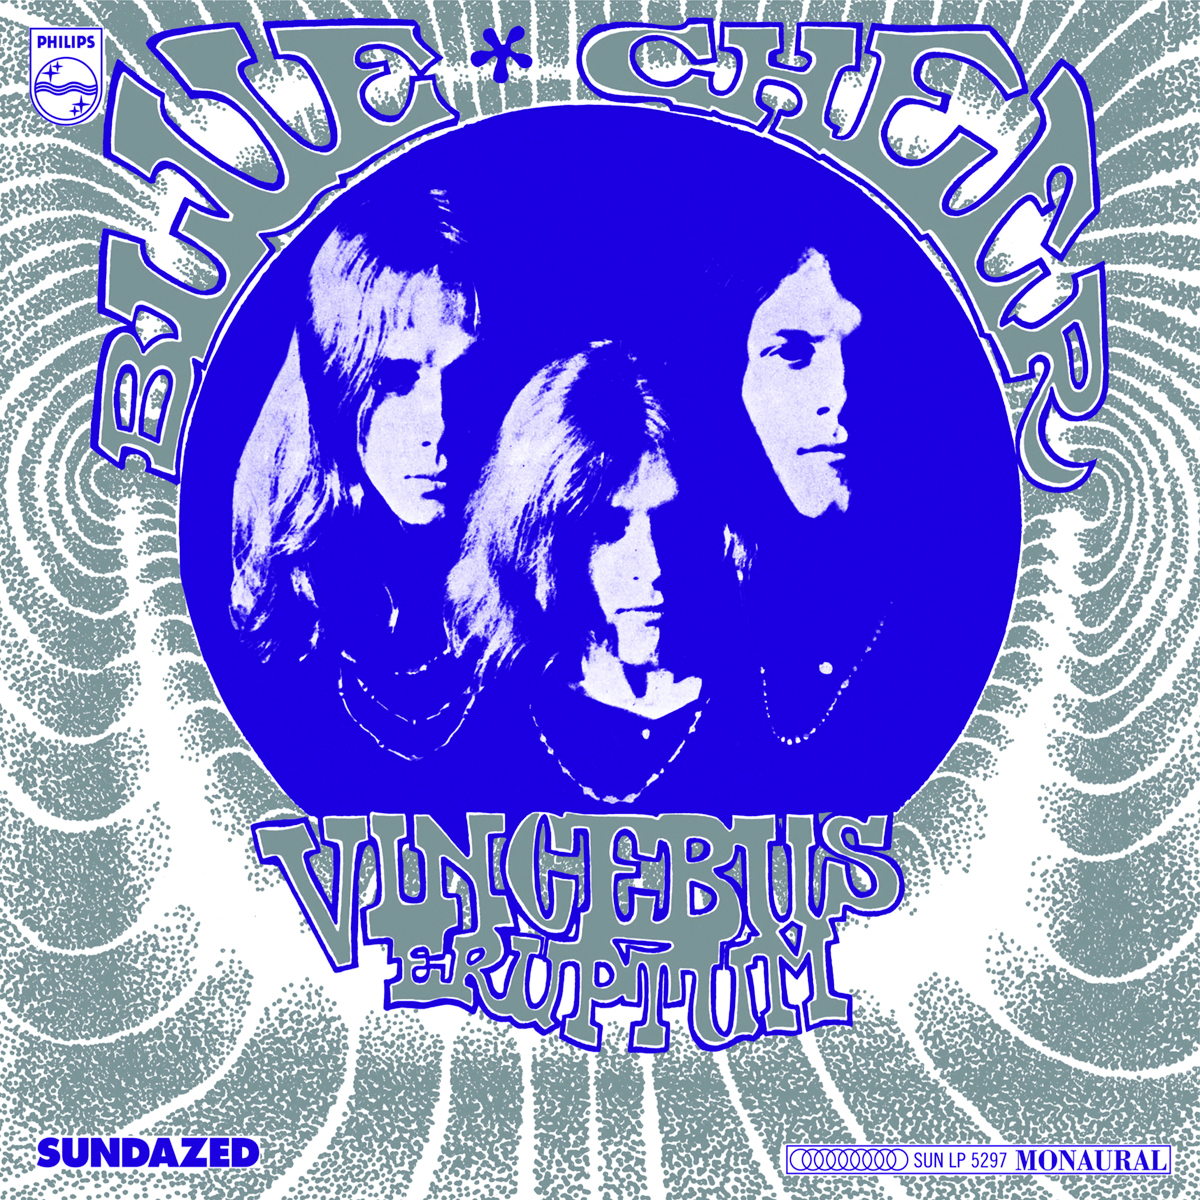 Blue Cheer - Vincebus Eruptum MONO Edition LP